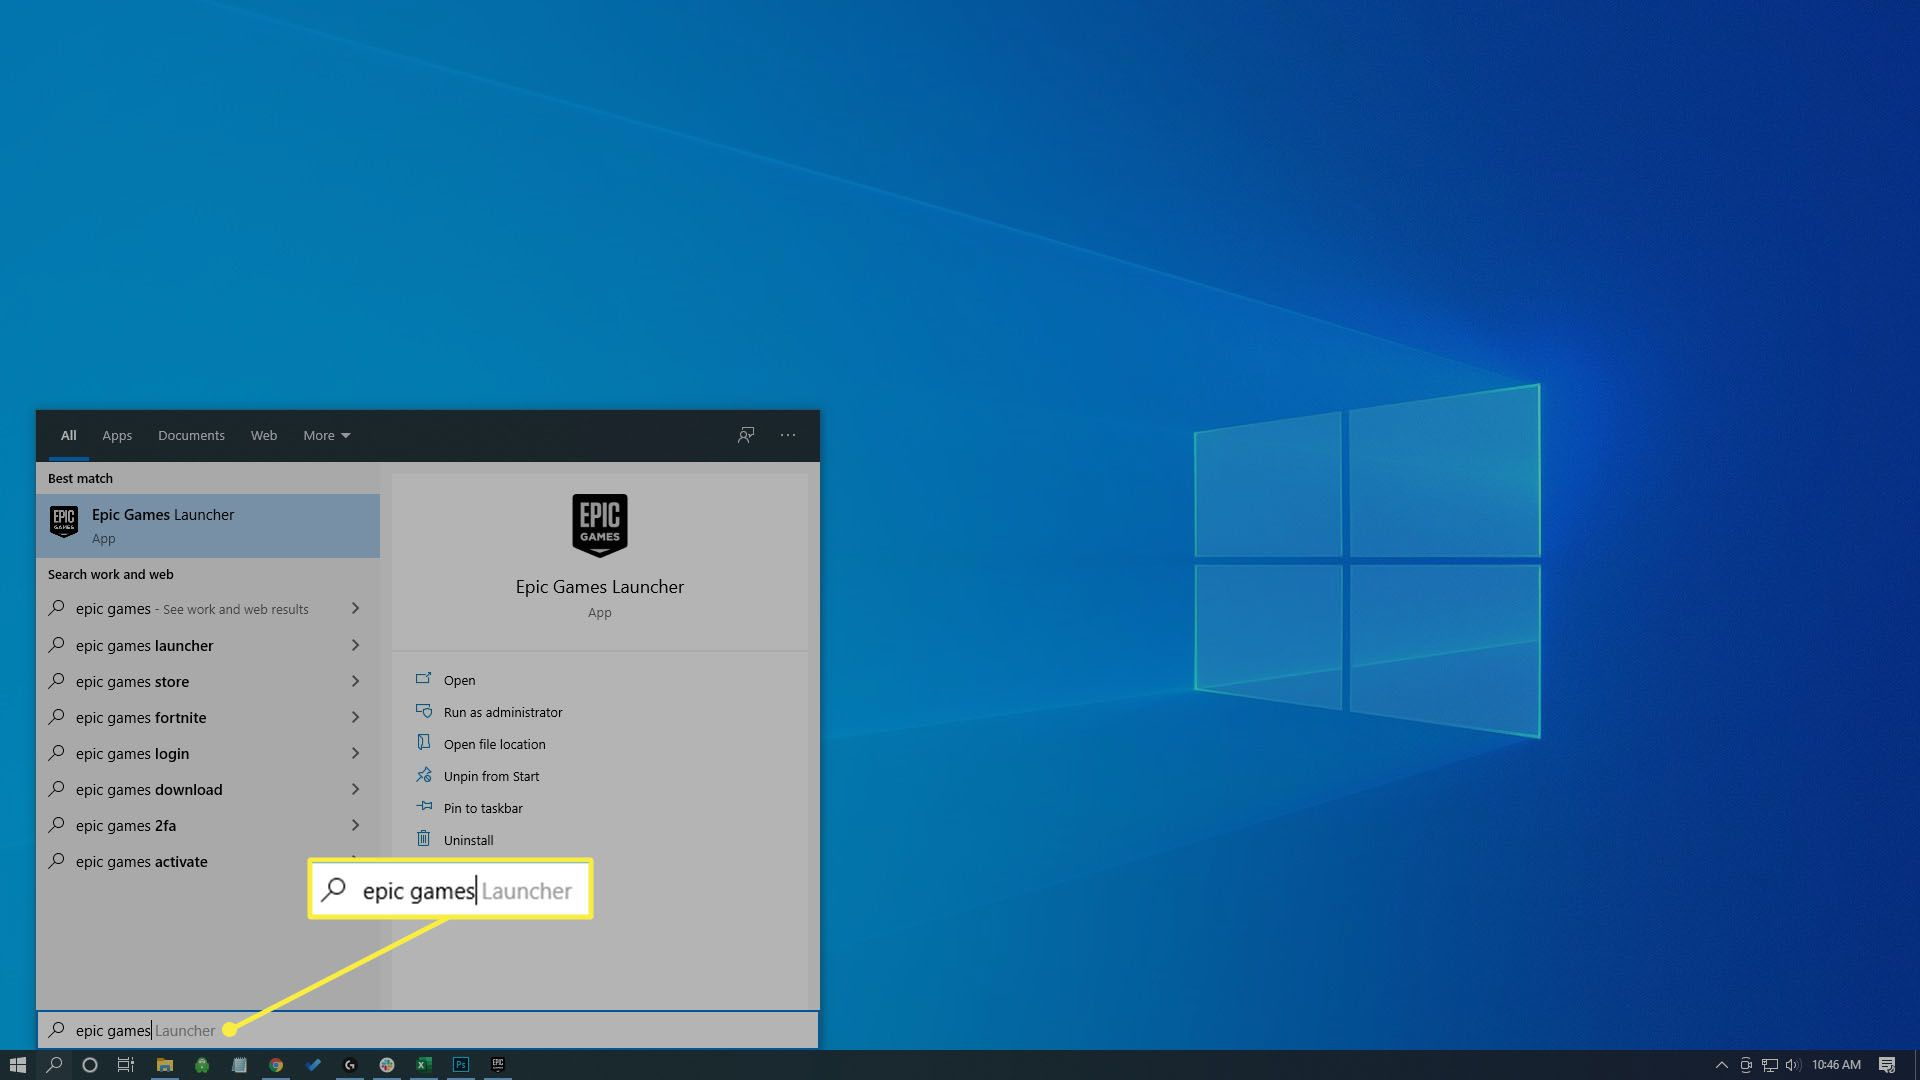 Searching for the Epic Games Launcher in Windows 10.